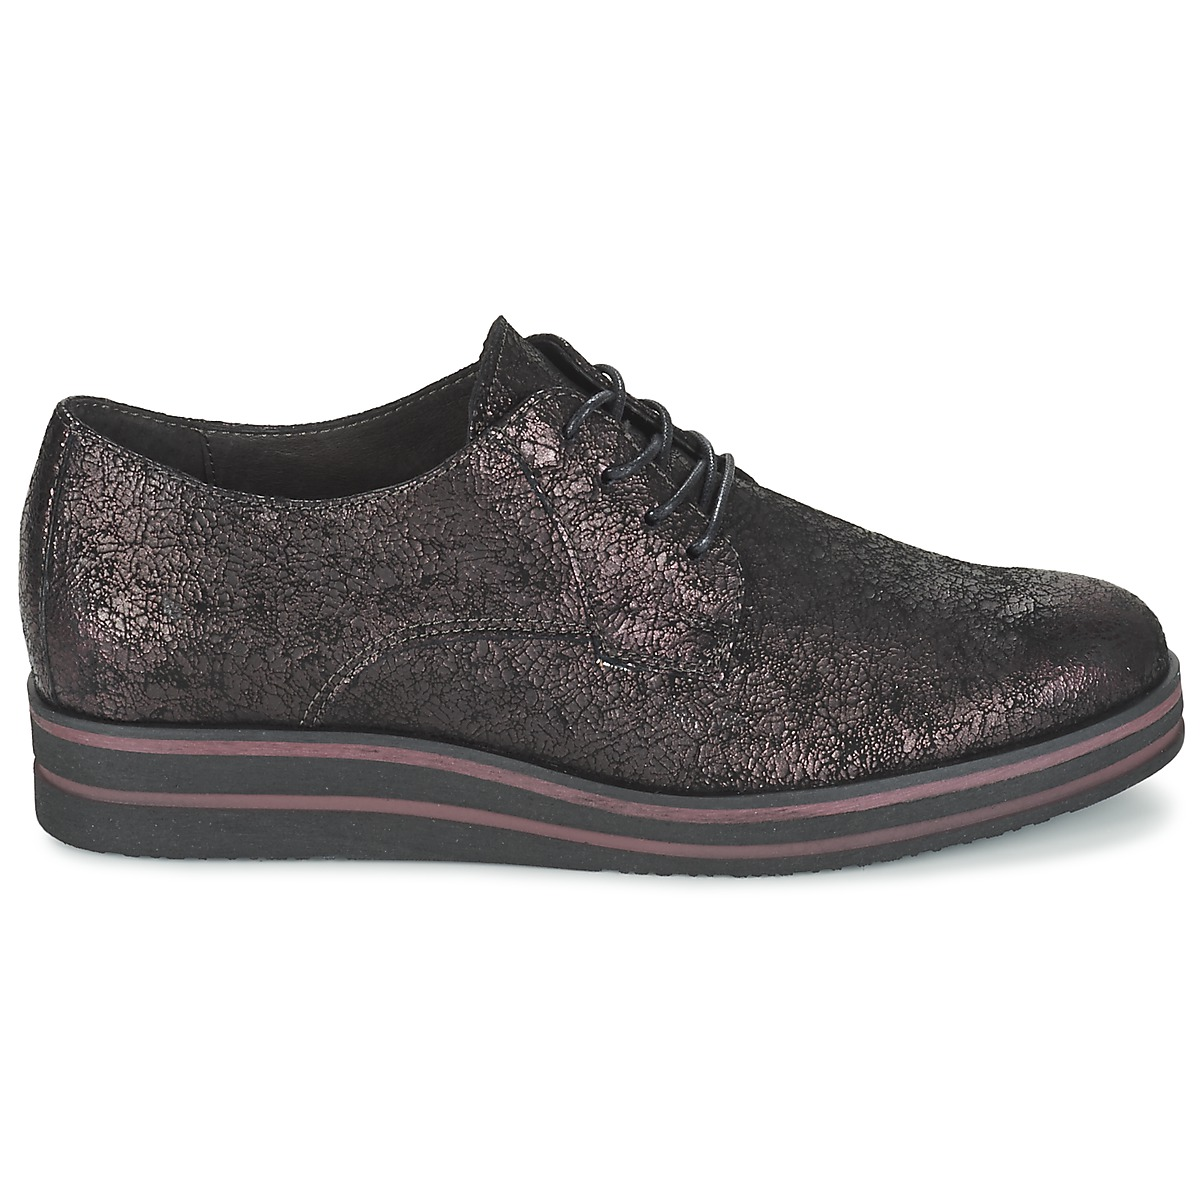 Bordeaux Shoes Women In Dream Koipxzu Outlet Green Fansita Derby 3R45AjL